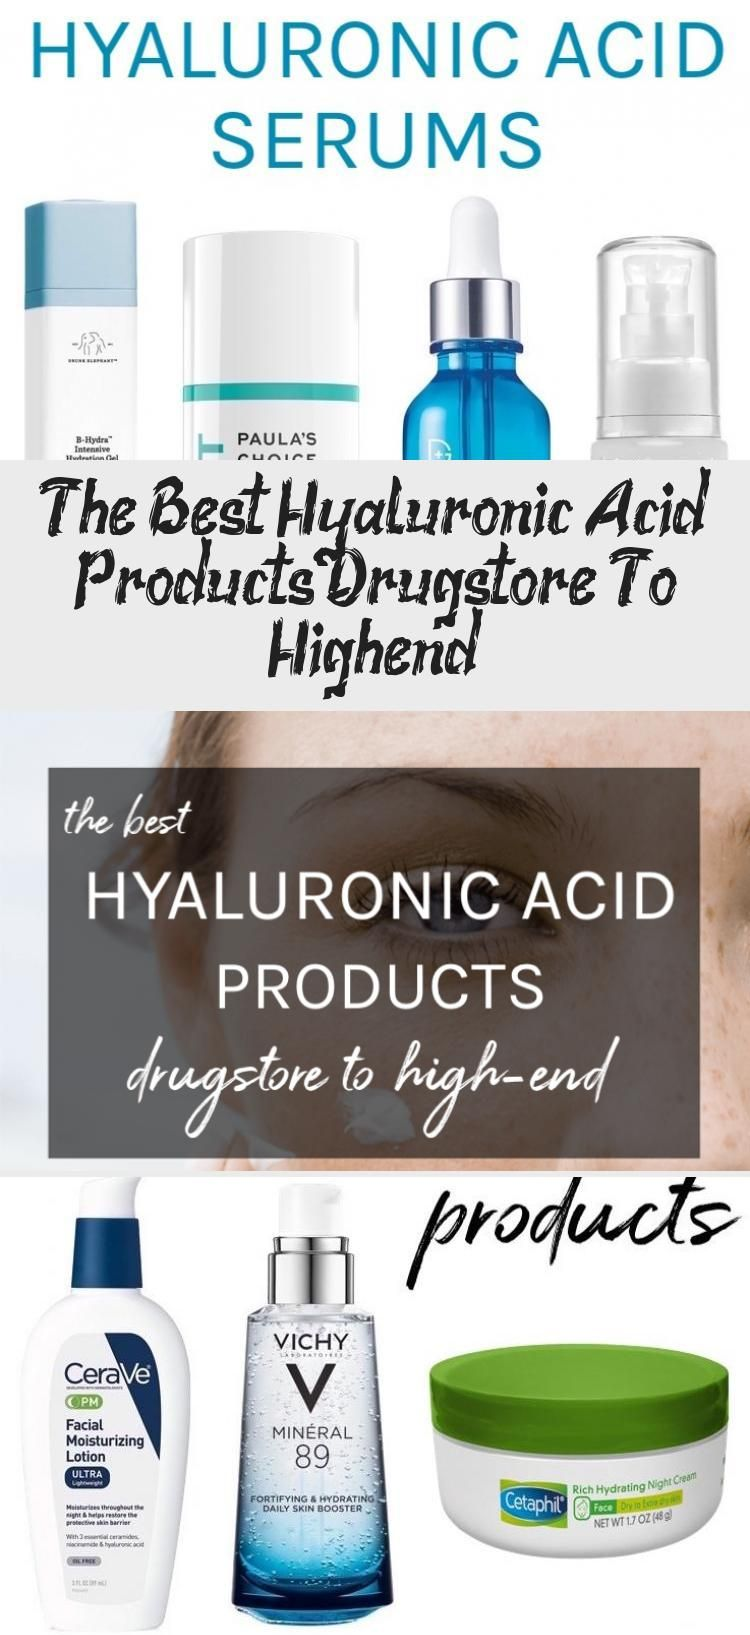 The Best Hyaluronic Acid Products: Drugstore To High-end - Beauty